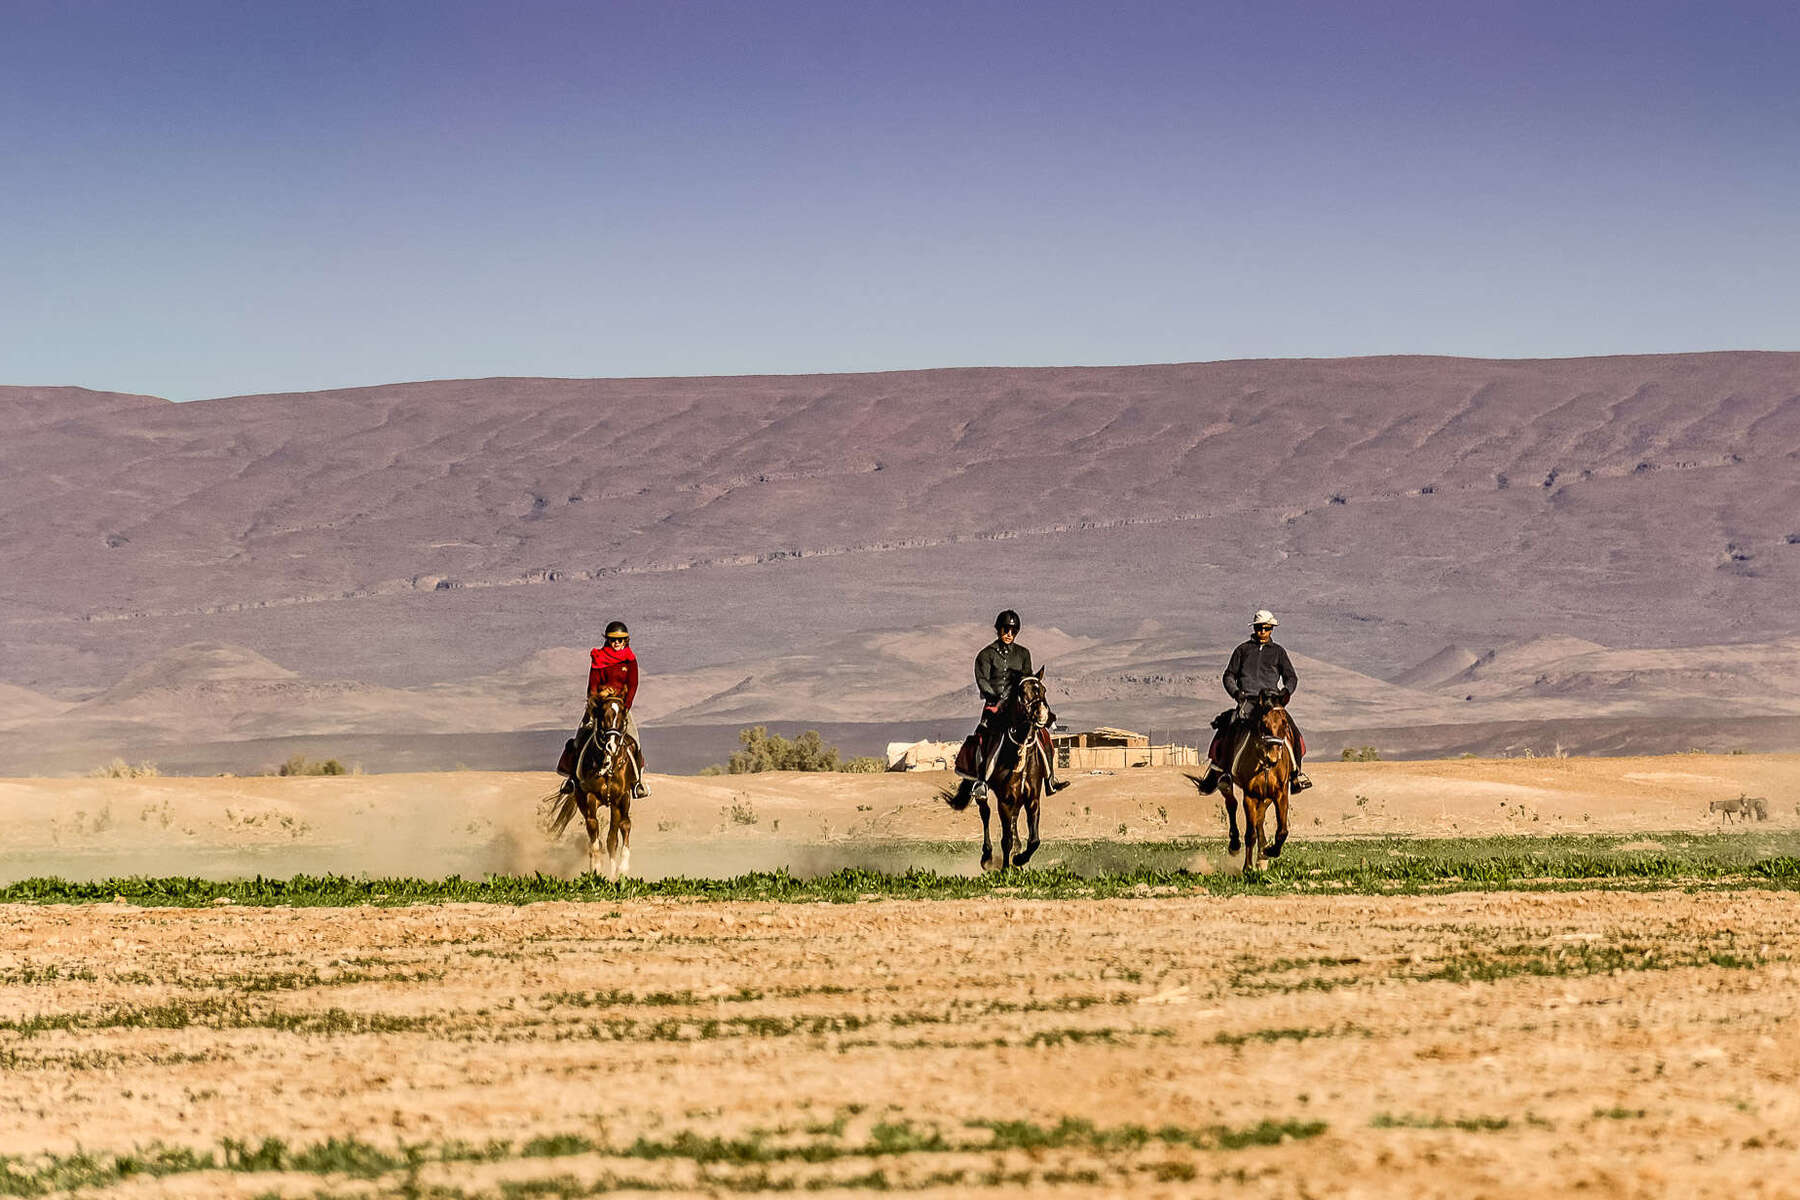 Riders cantering in a green part of the Sahara